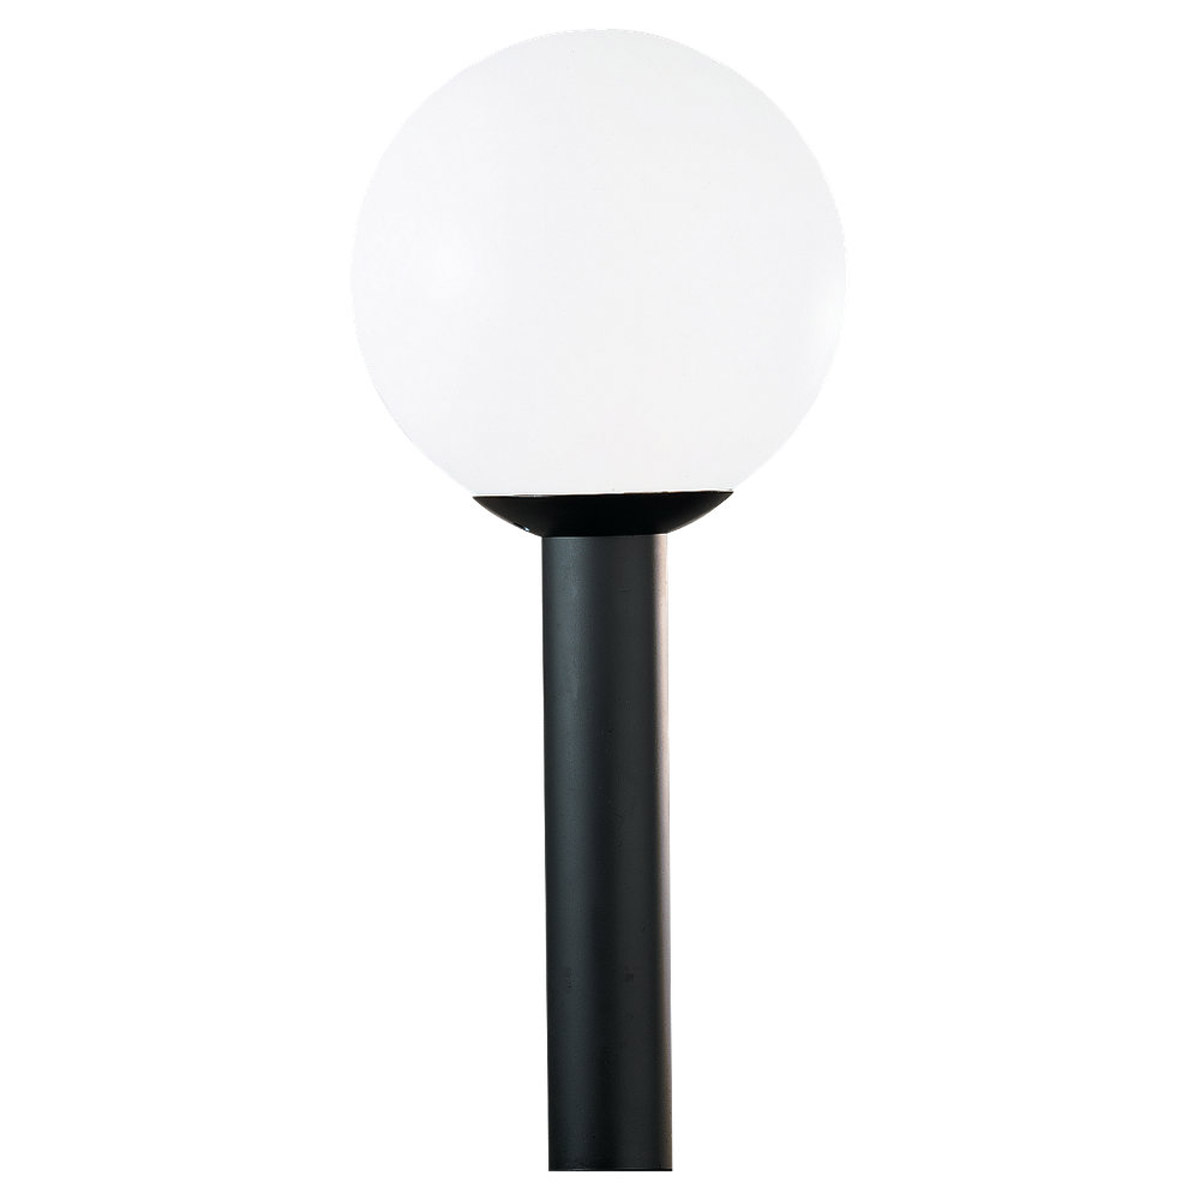 Sea Gull Lighting Outdoor Globe 1 Light Outdoor Post Lantern in White Plastic 8252-68